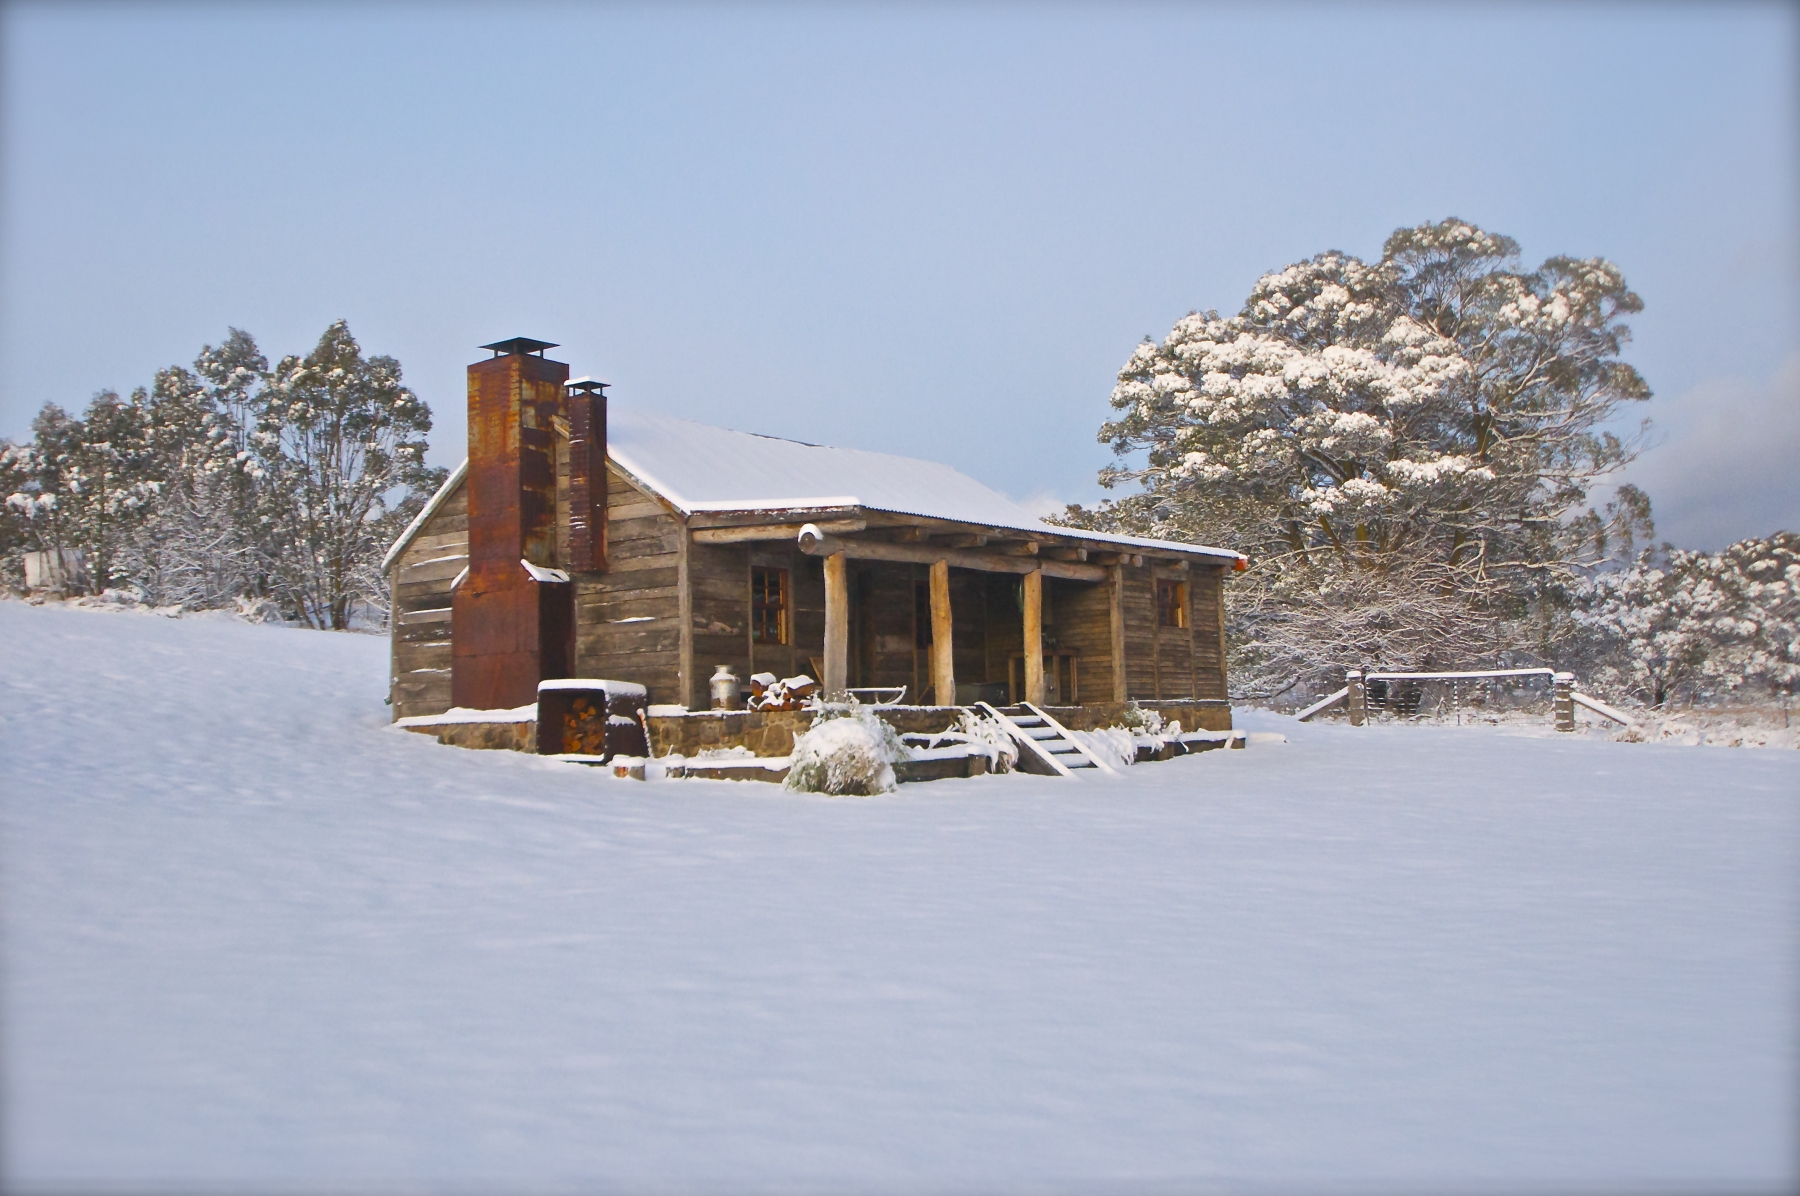 Moonbah River Hut in Winter